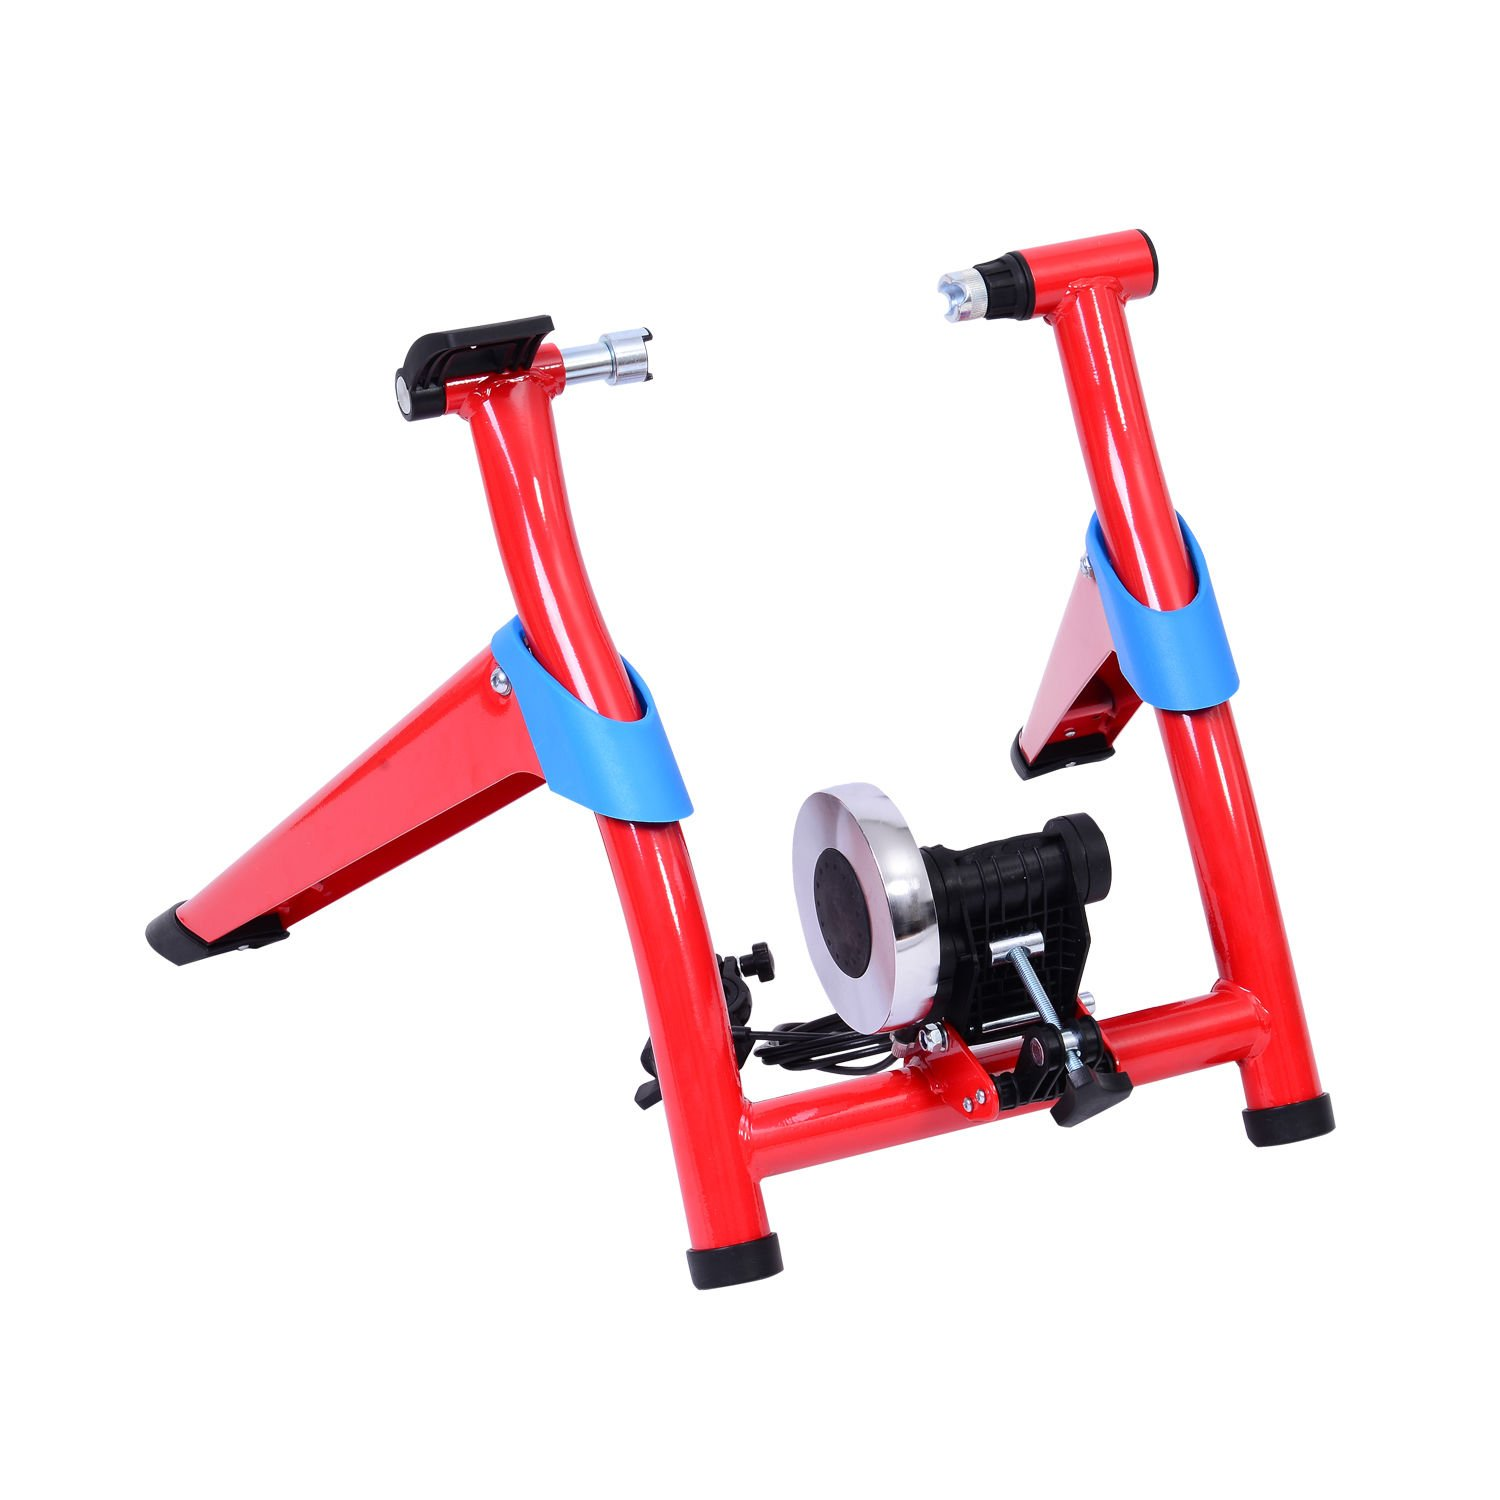 Globe House Products GHP Red 8 Speed Magnetic Indoor Workout Bike Resistance Trainer Exercise